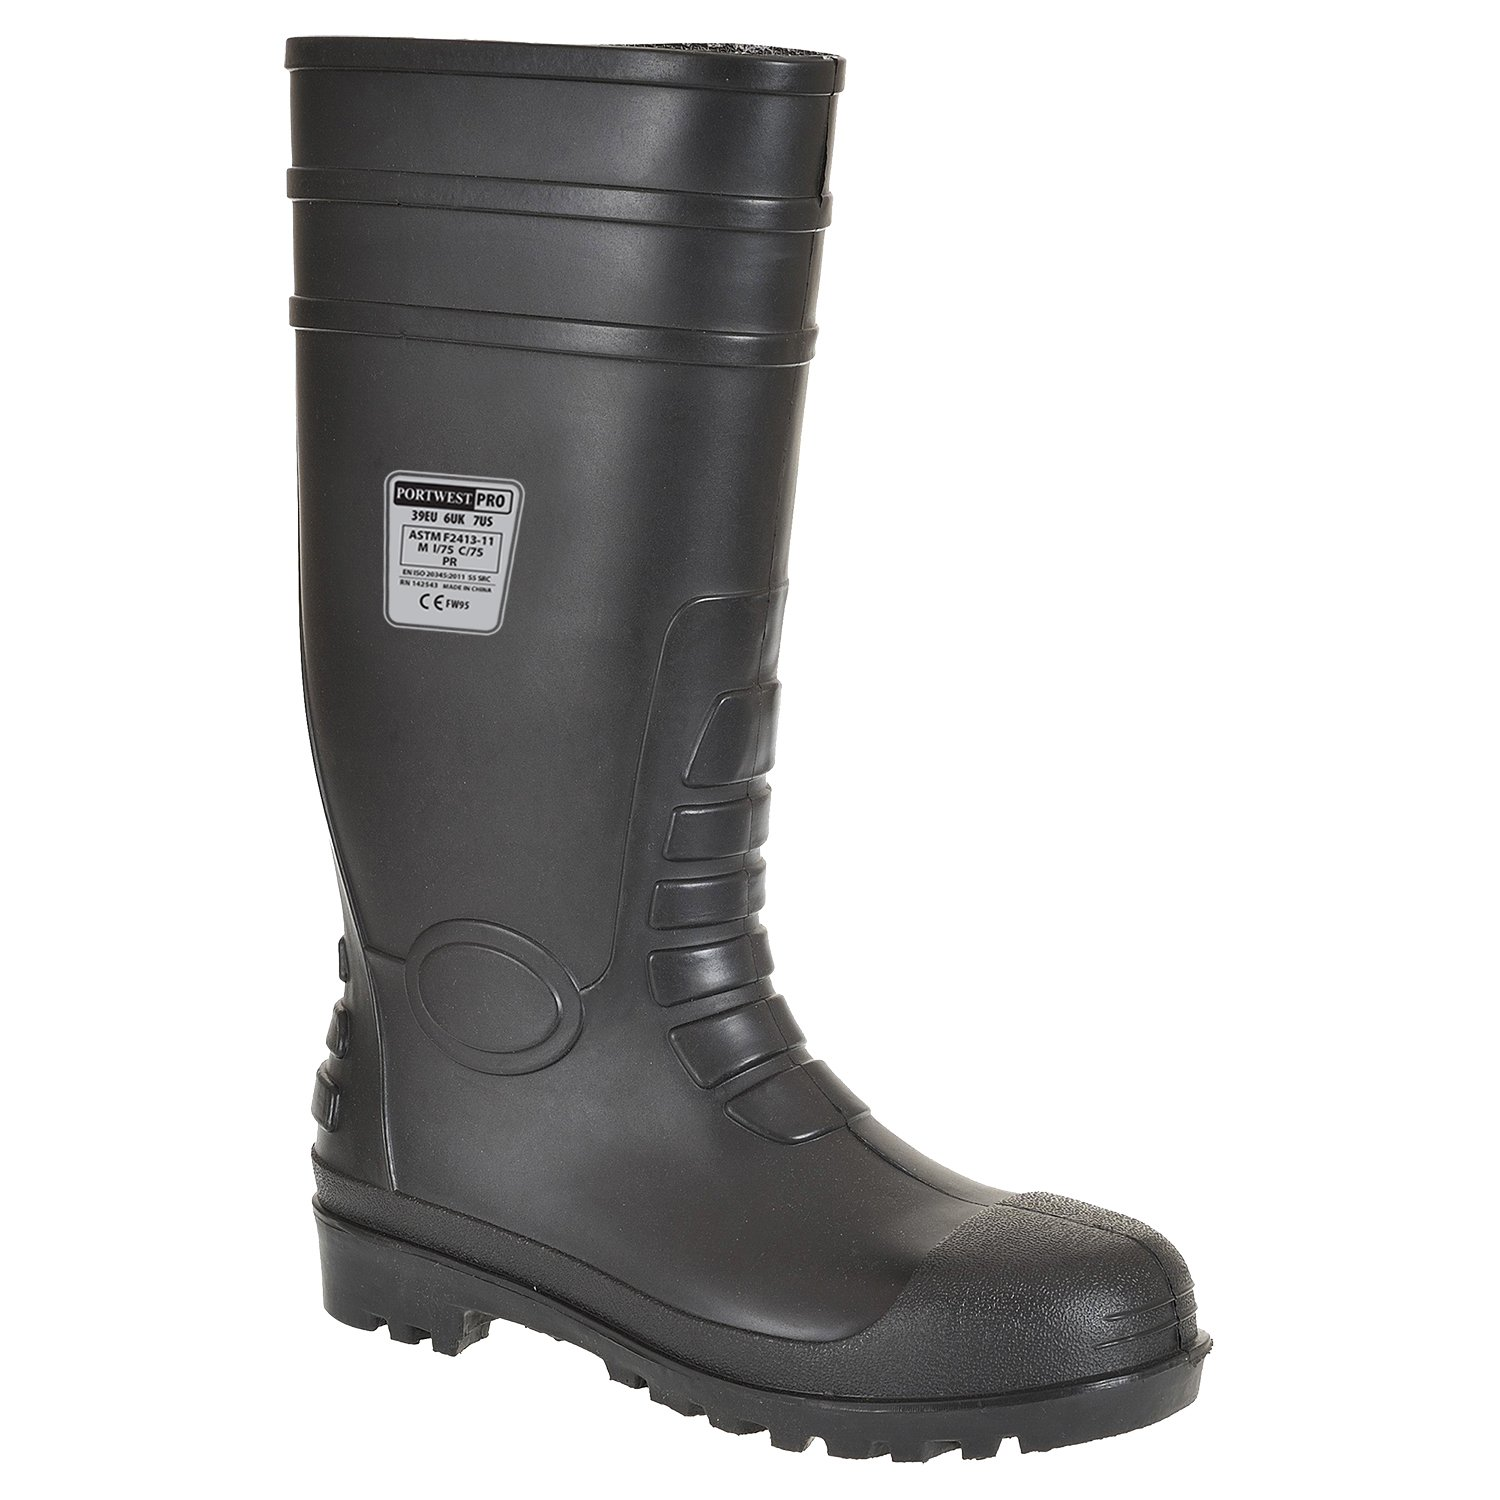 Portwest Steelite Total Safety Wellington S5 - zapatos de seguridad para hombre FW95